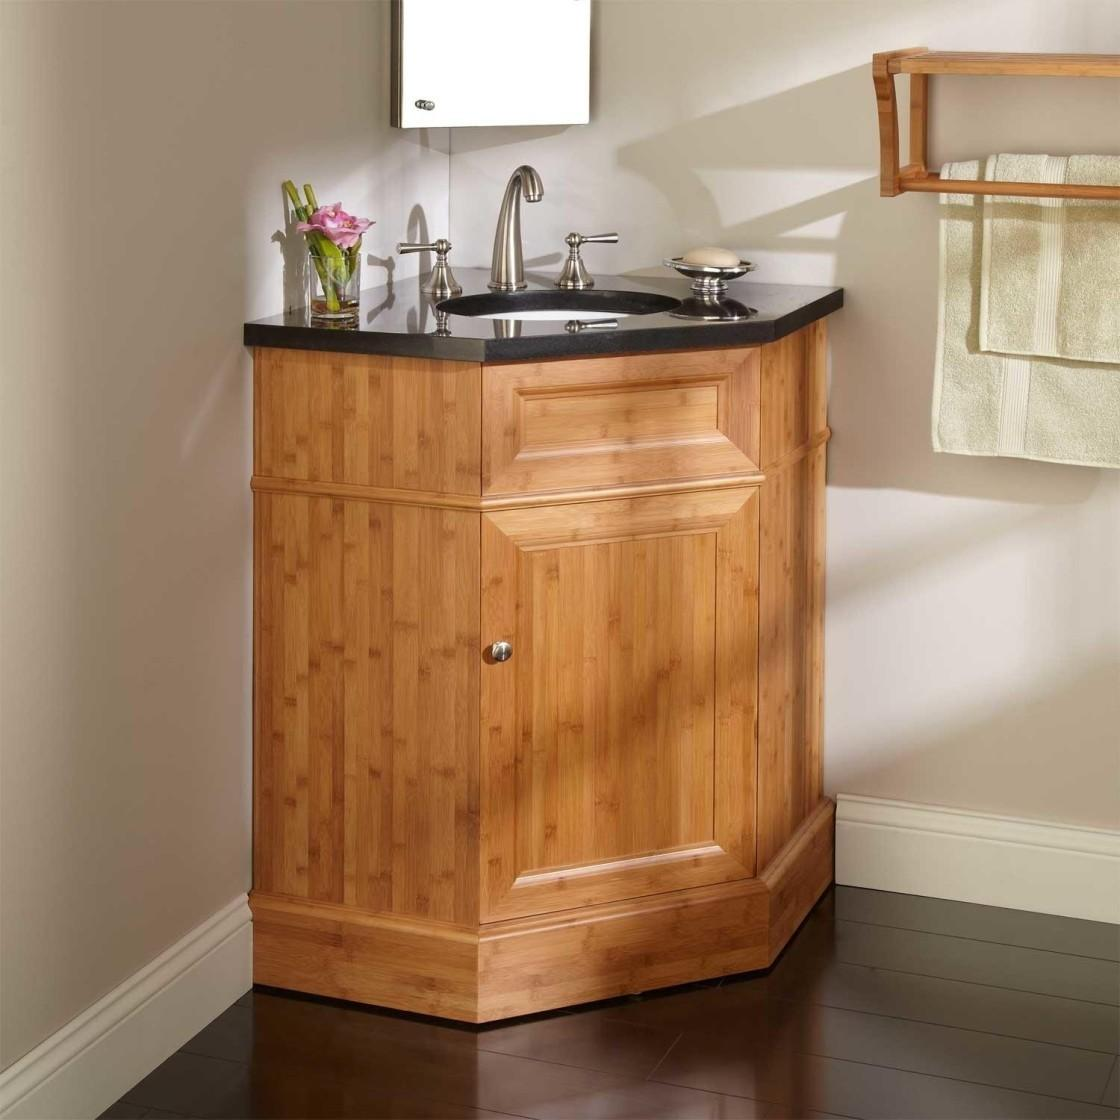 Home Decor Bathroom Corner Vanity Units Cloakroom